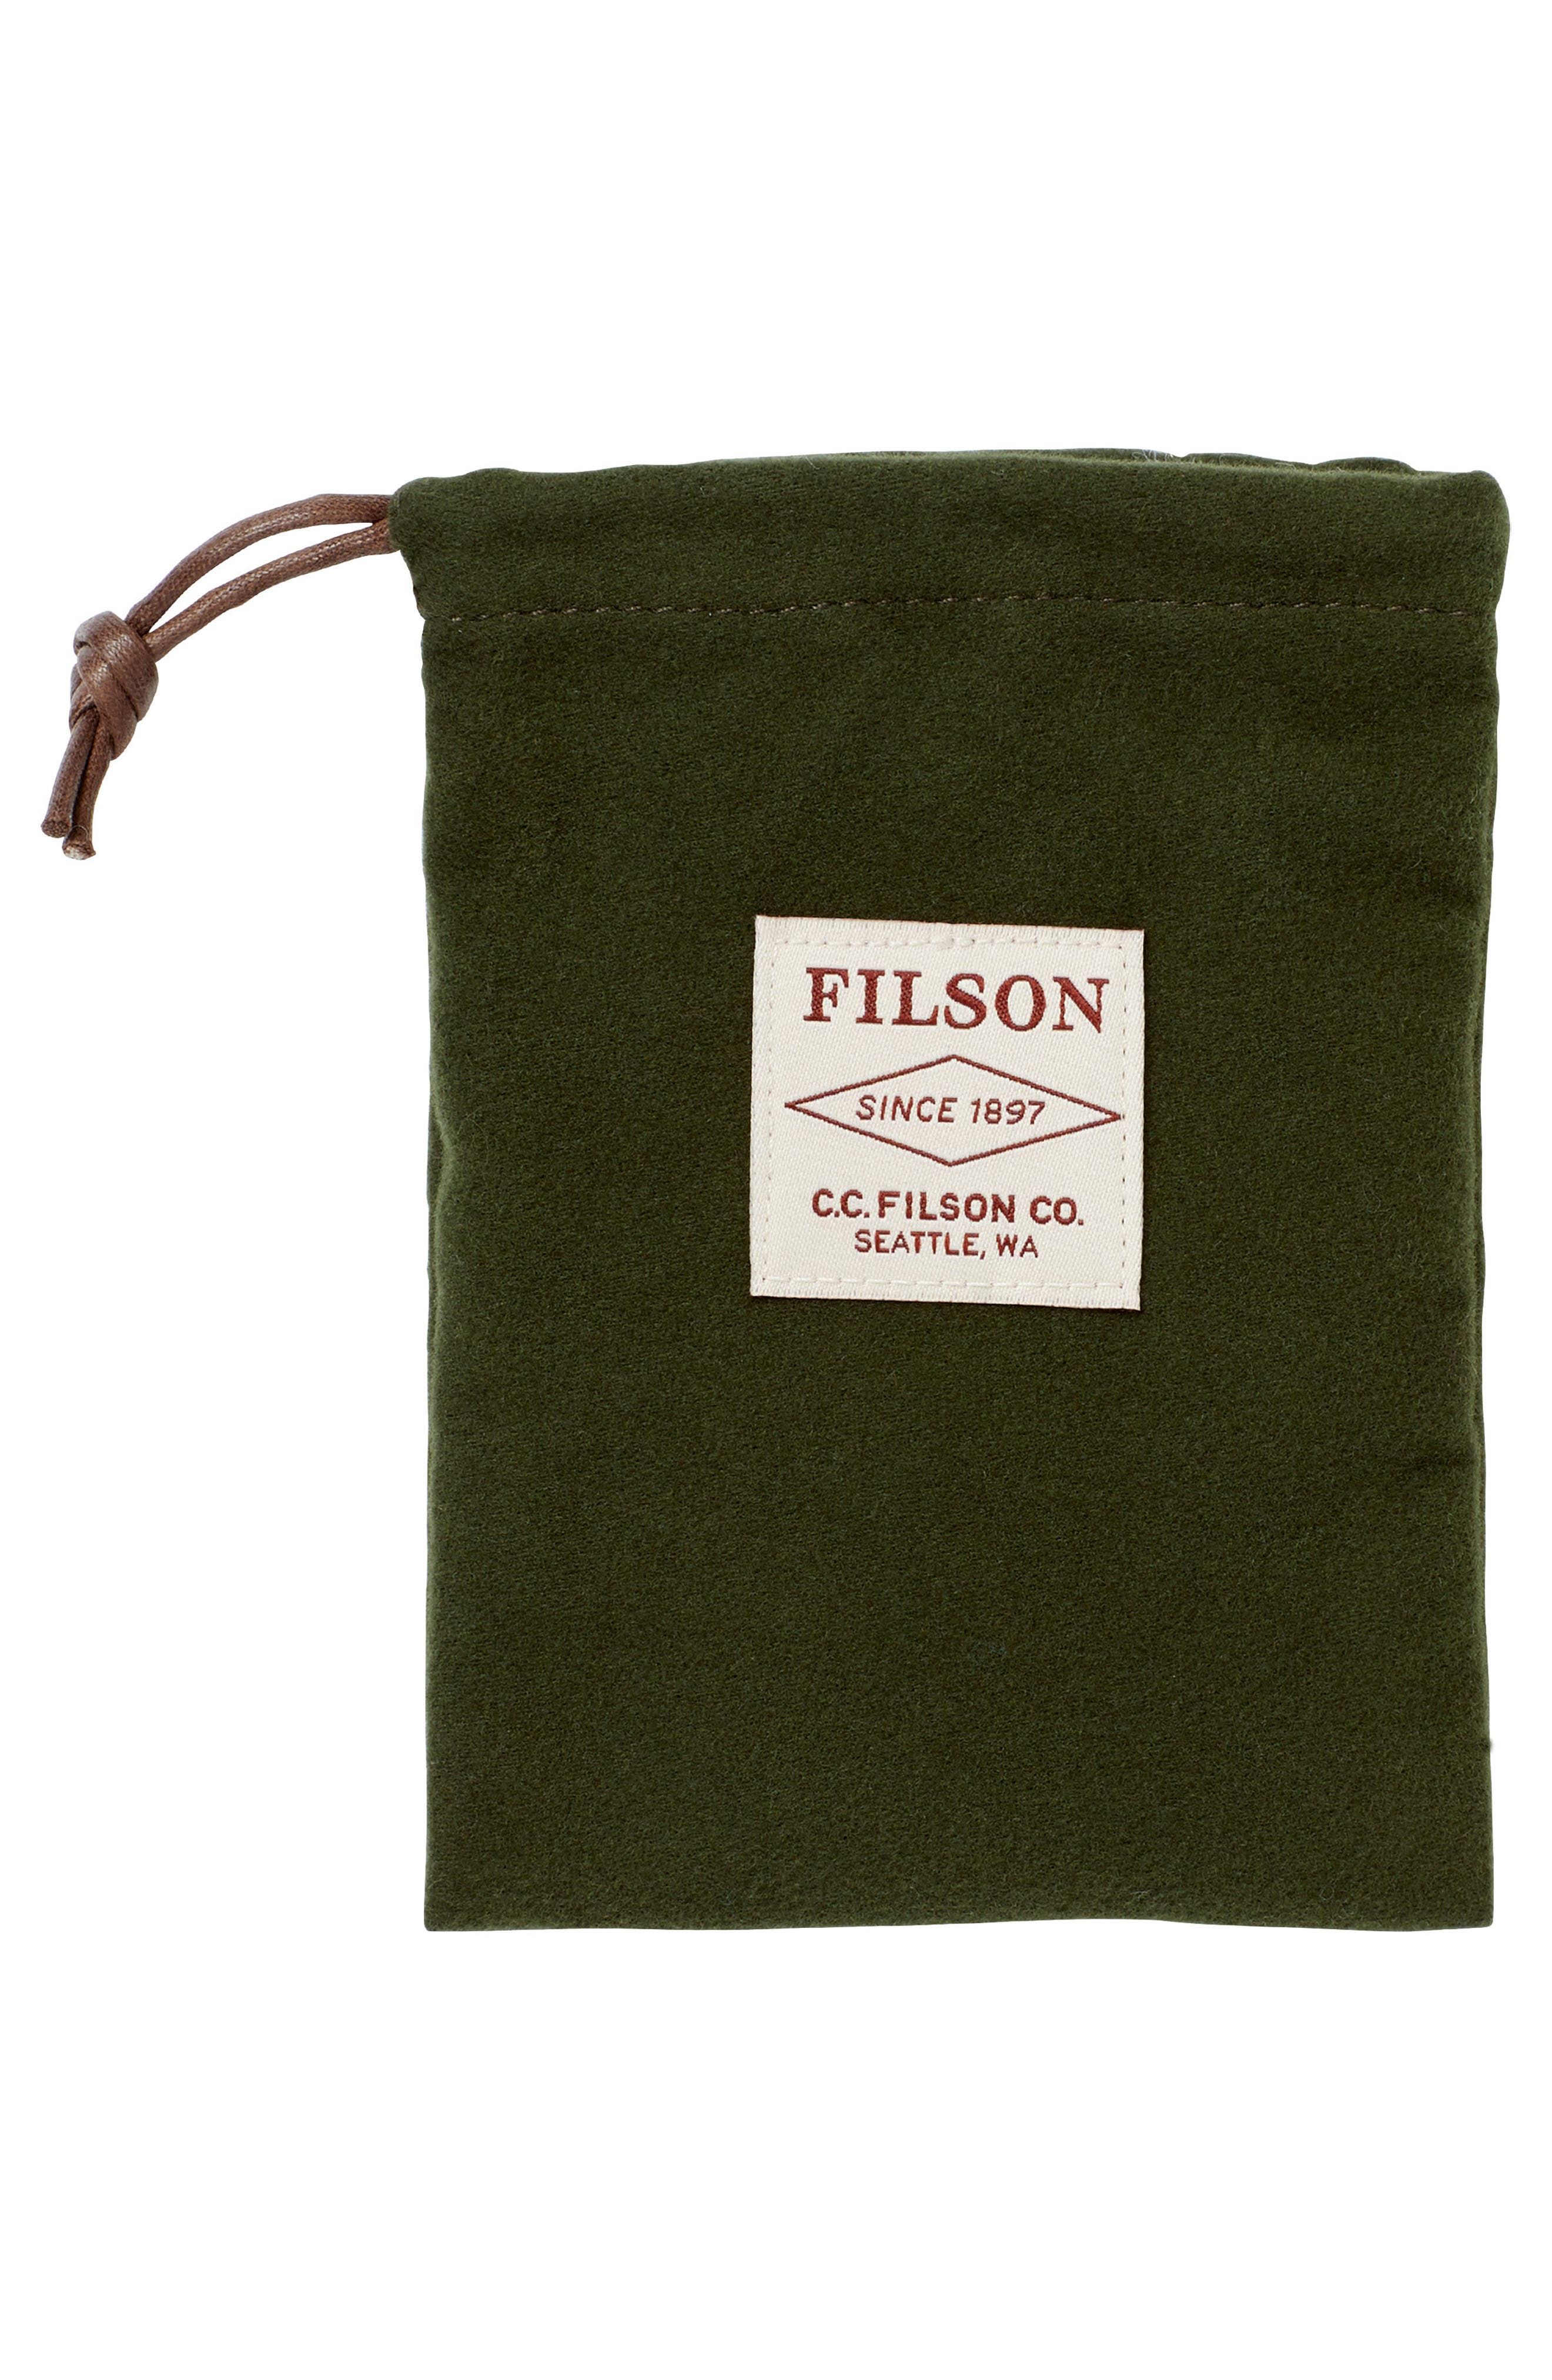 Alternate Image 3  - Filsone Outfitter Leather & Canvas Bifold Wallet